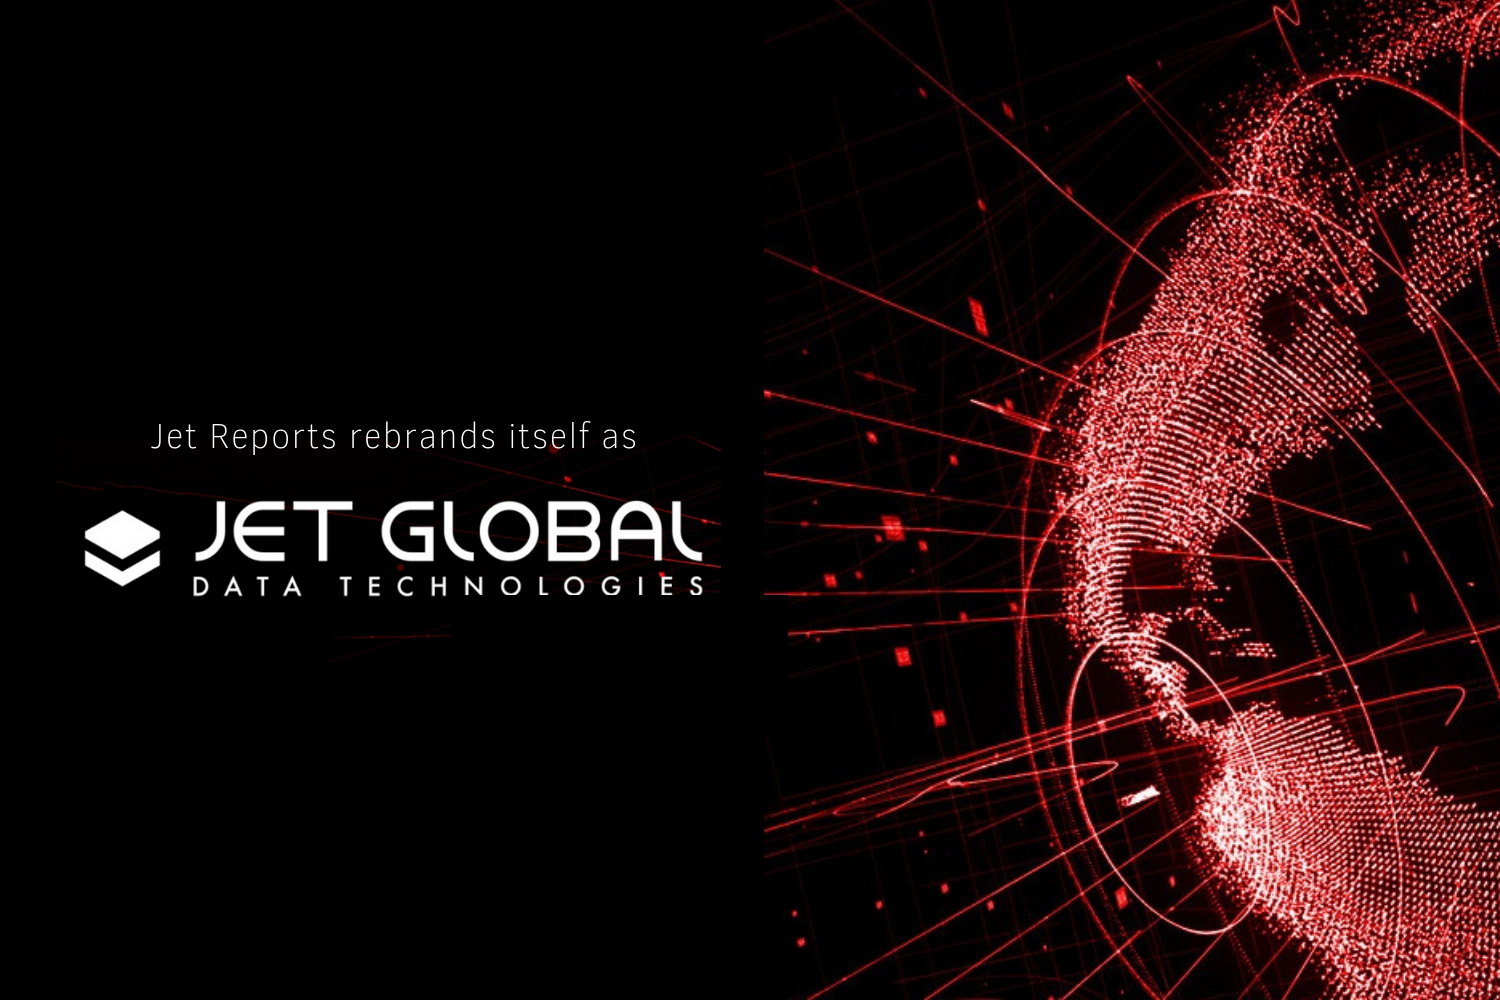 Jet Reports is now known as Jet Global Data Technologies